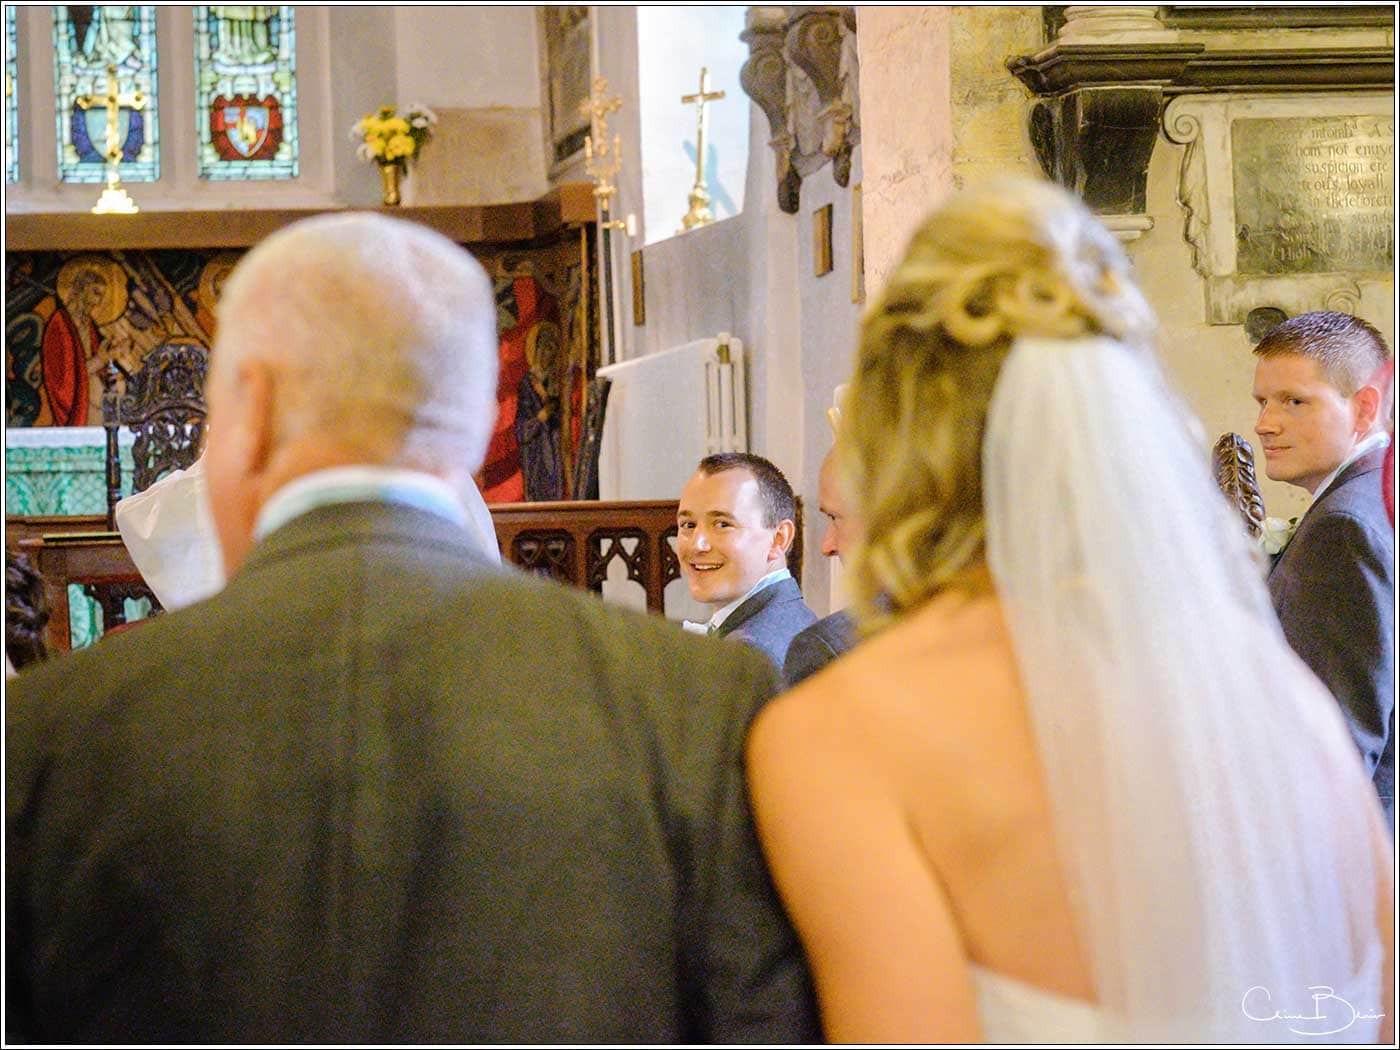 Groom seeing bride for the first time-by Hampton manor wedding photographer Clive Blair Photography